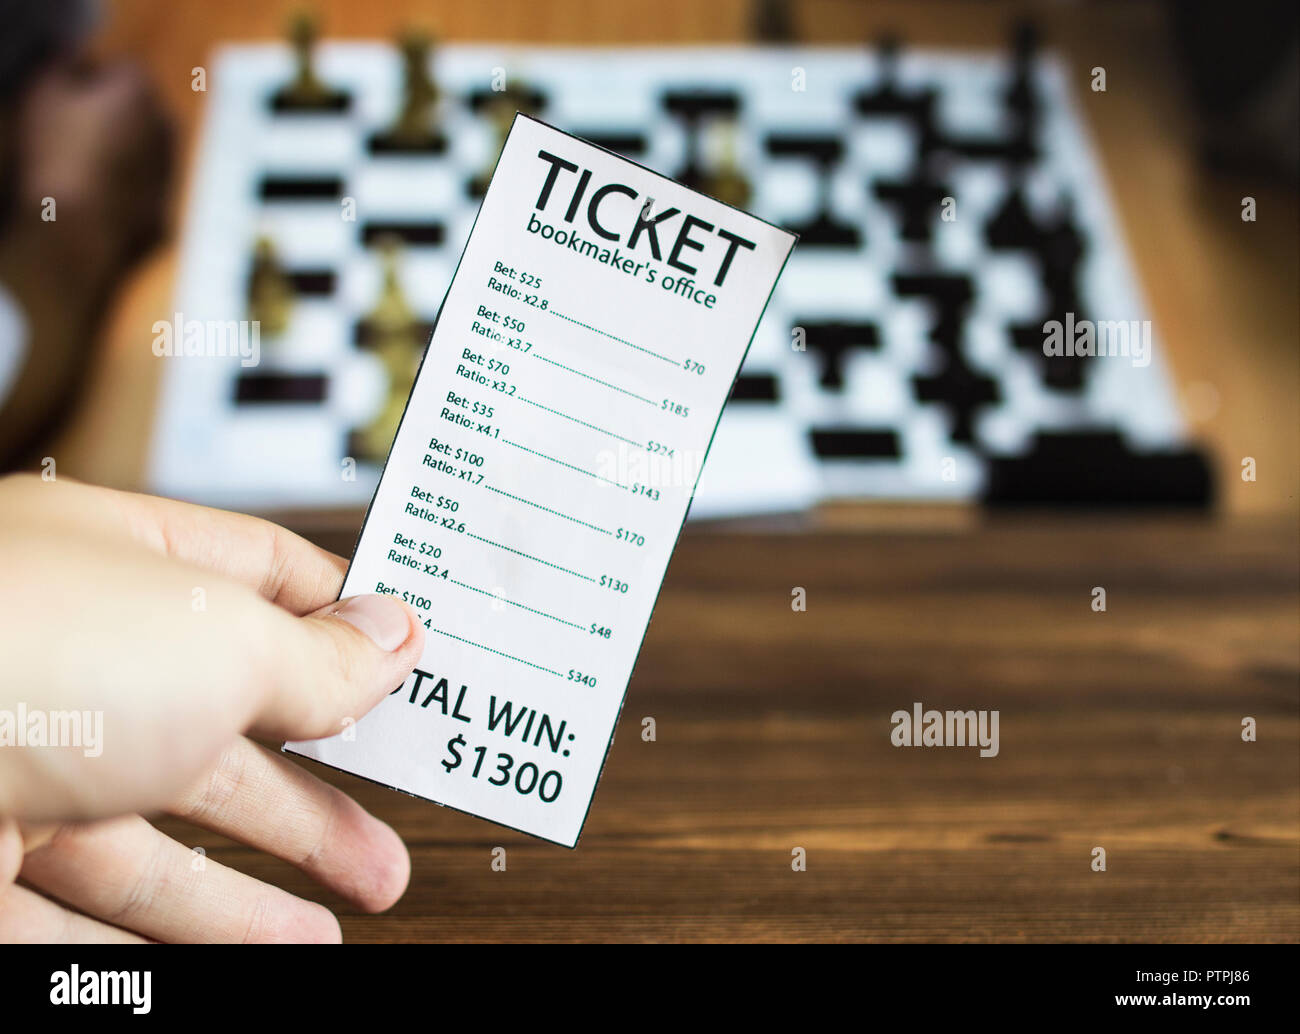 Bookmaker ticket on the background of the TV on which the sport is shown playing chess, checkers, sports betting, chess, bookmaker Stock Photo